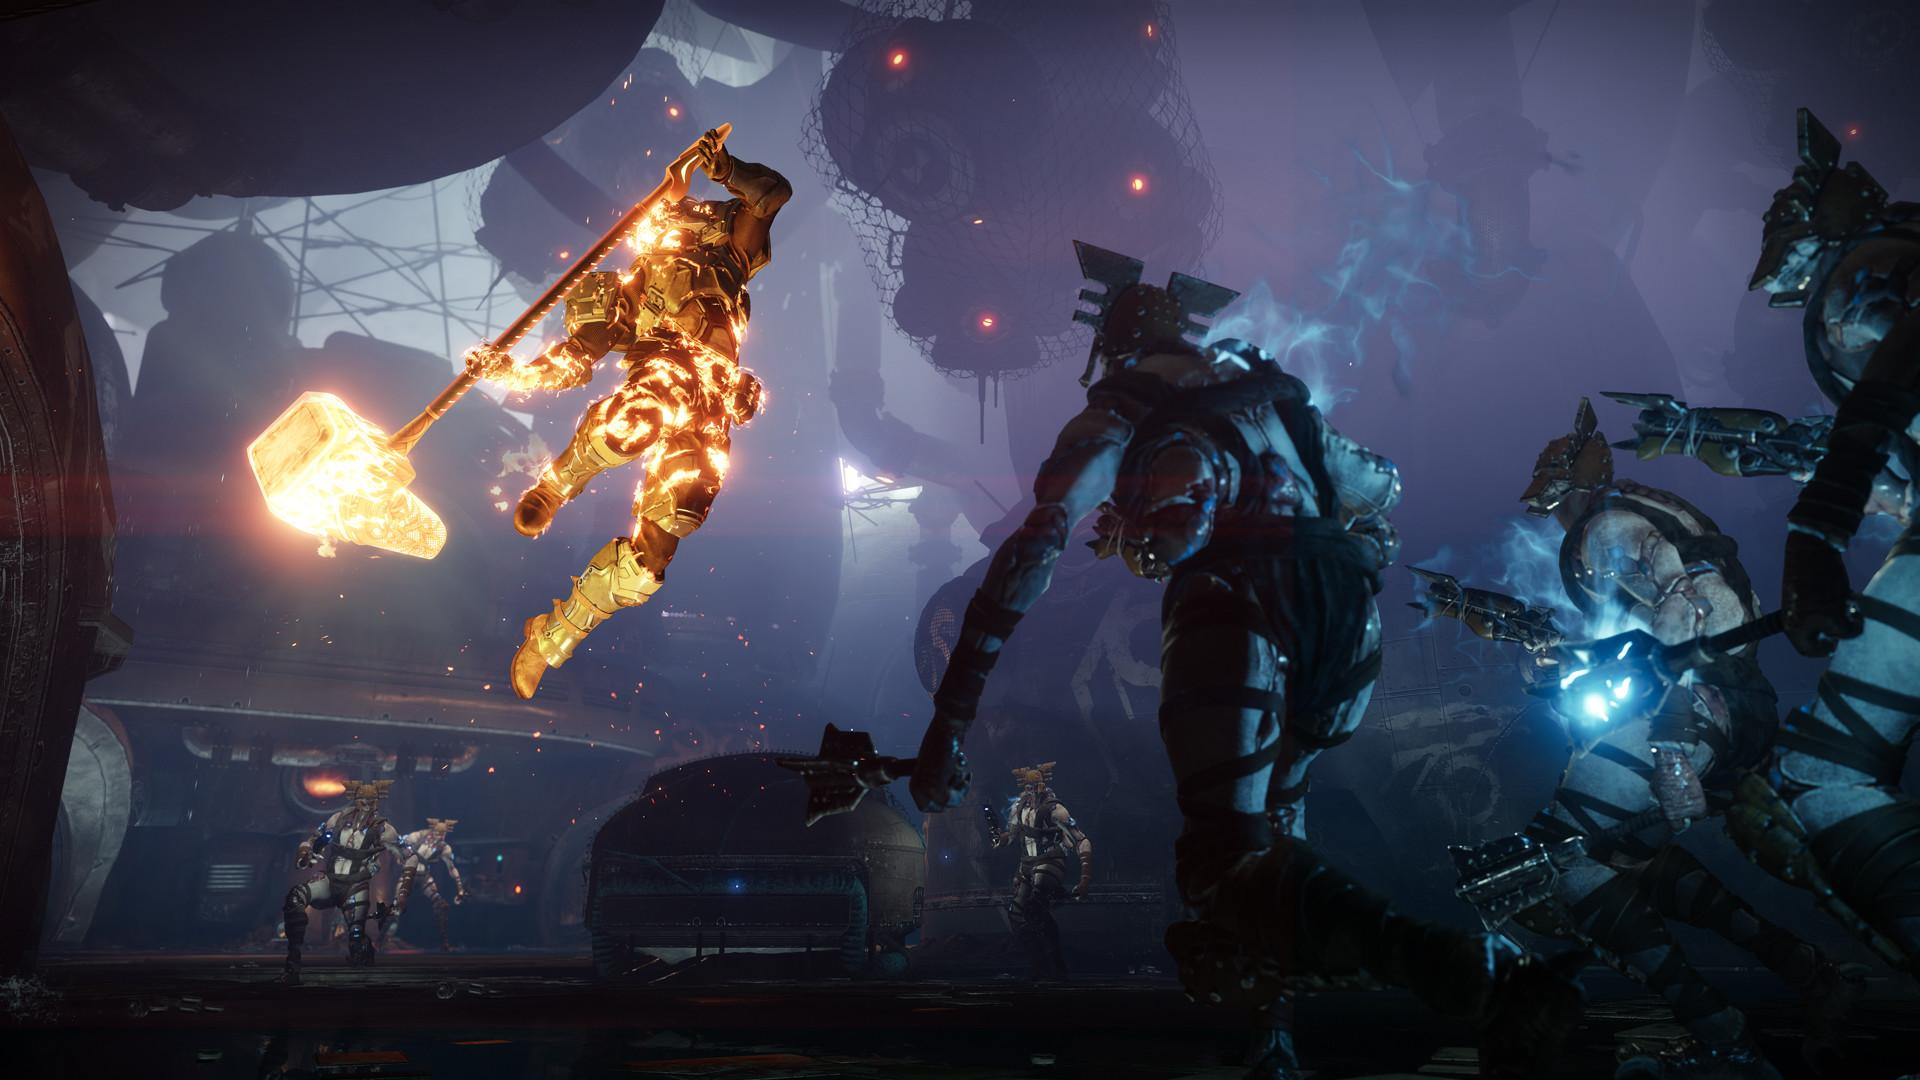 Destiny 2 Forsaken added the Scorn, a new enemy faction found mainly in the Tangled Shore and Dreaming City